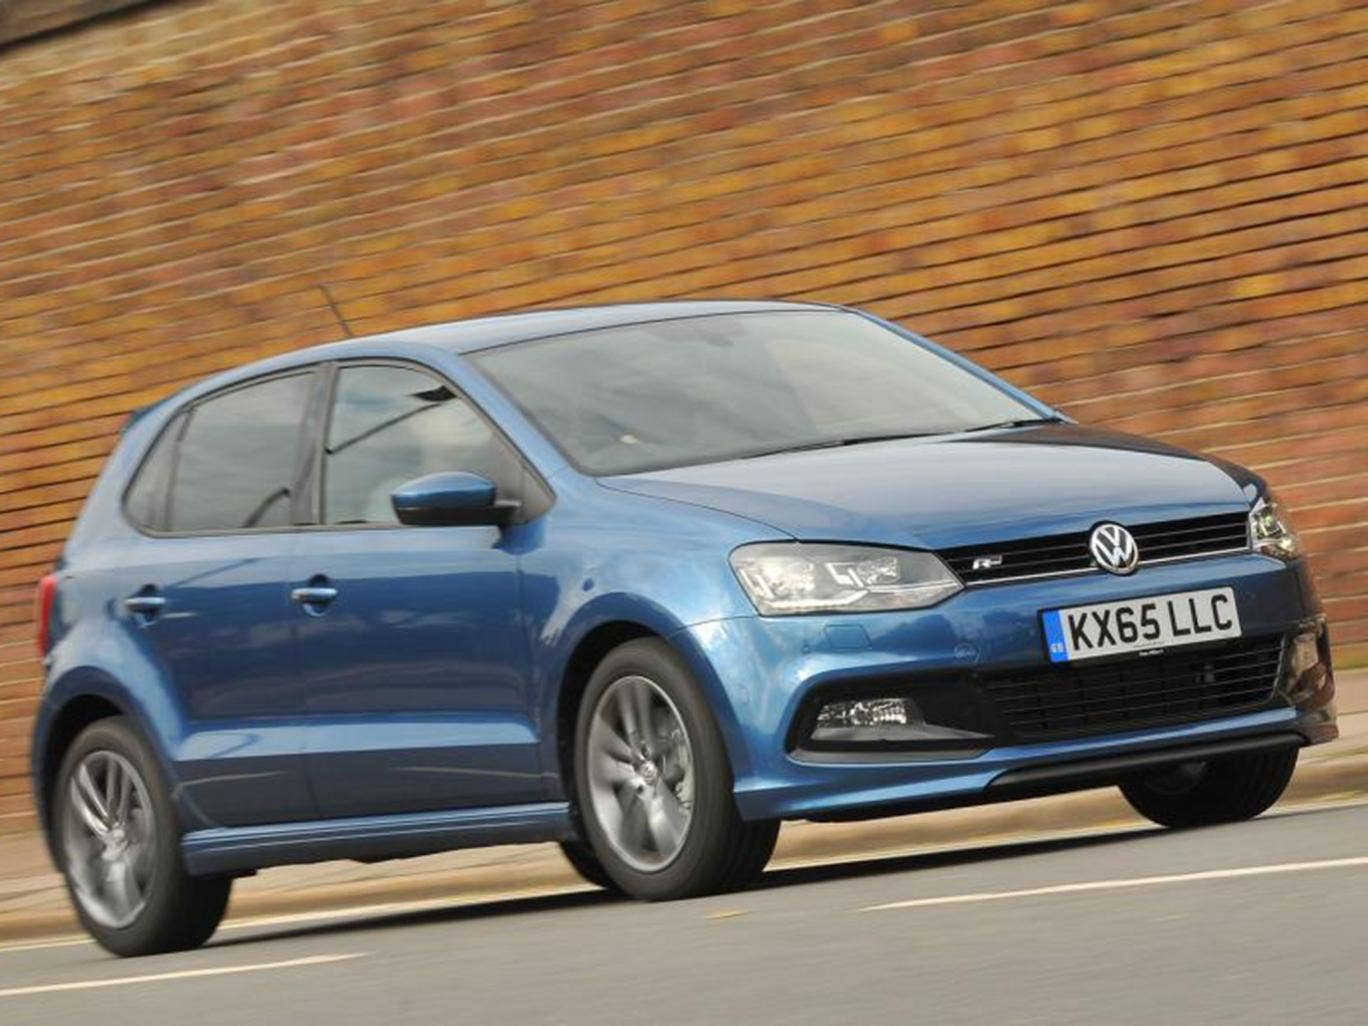 2015 volkswagen polo r line 1 0 110 motoring review this model sits at the top of the polo. Black Bedroom Furniture Sets. Home Design Ideas